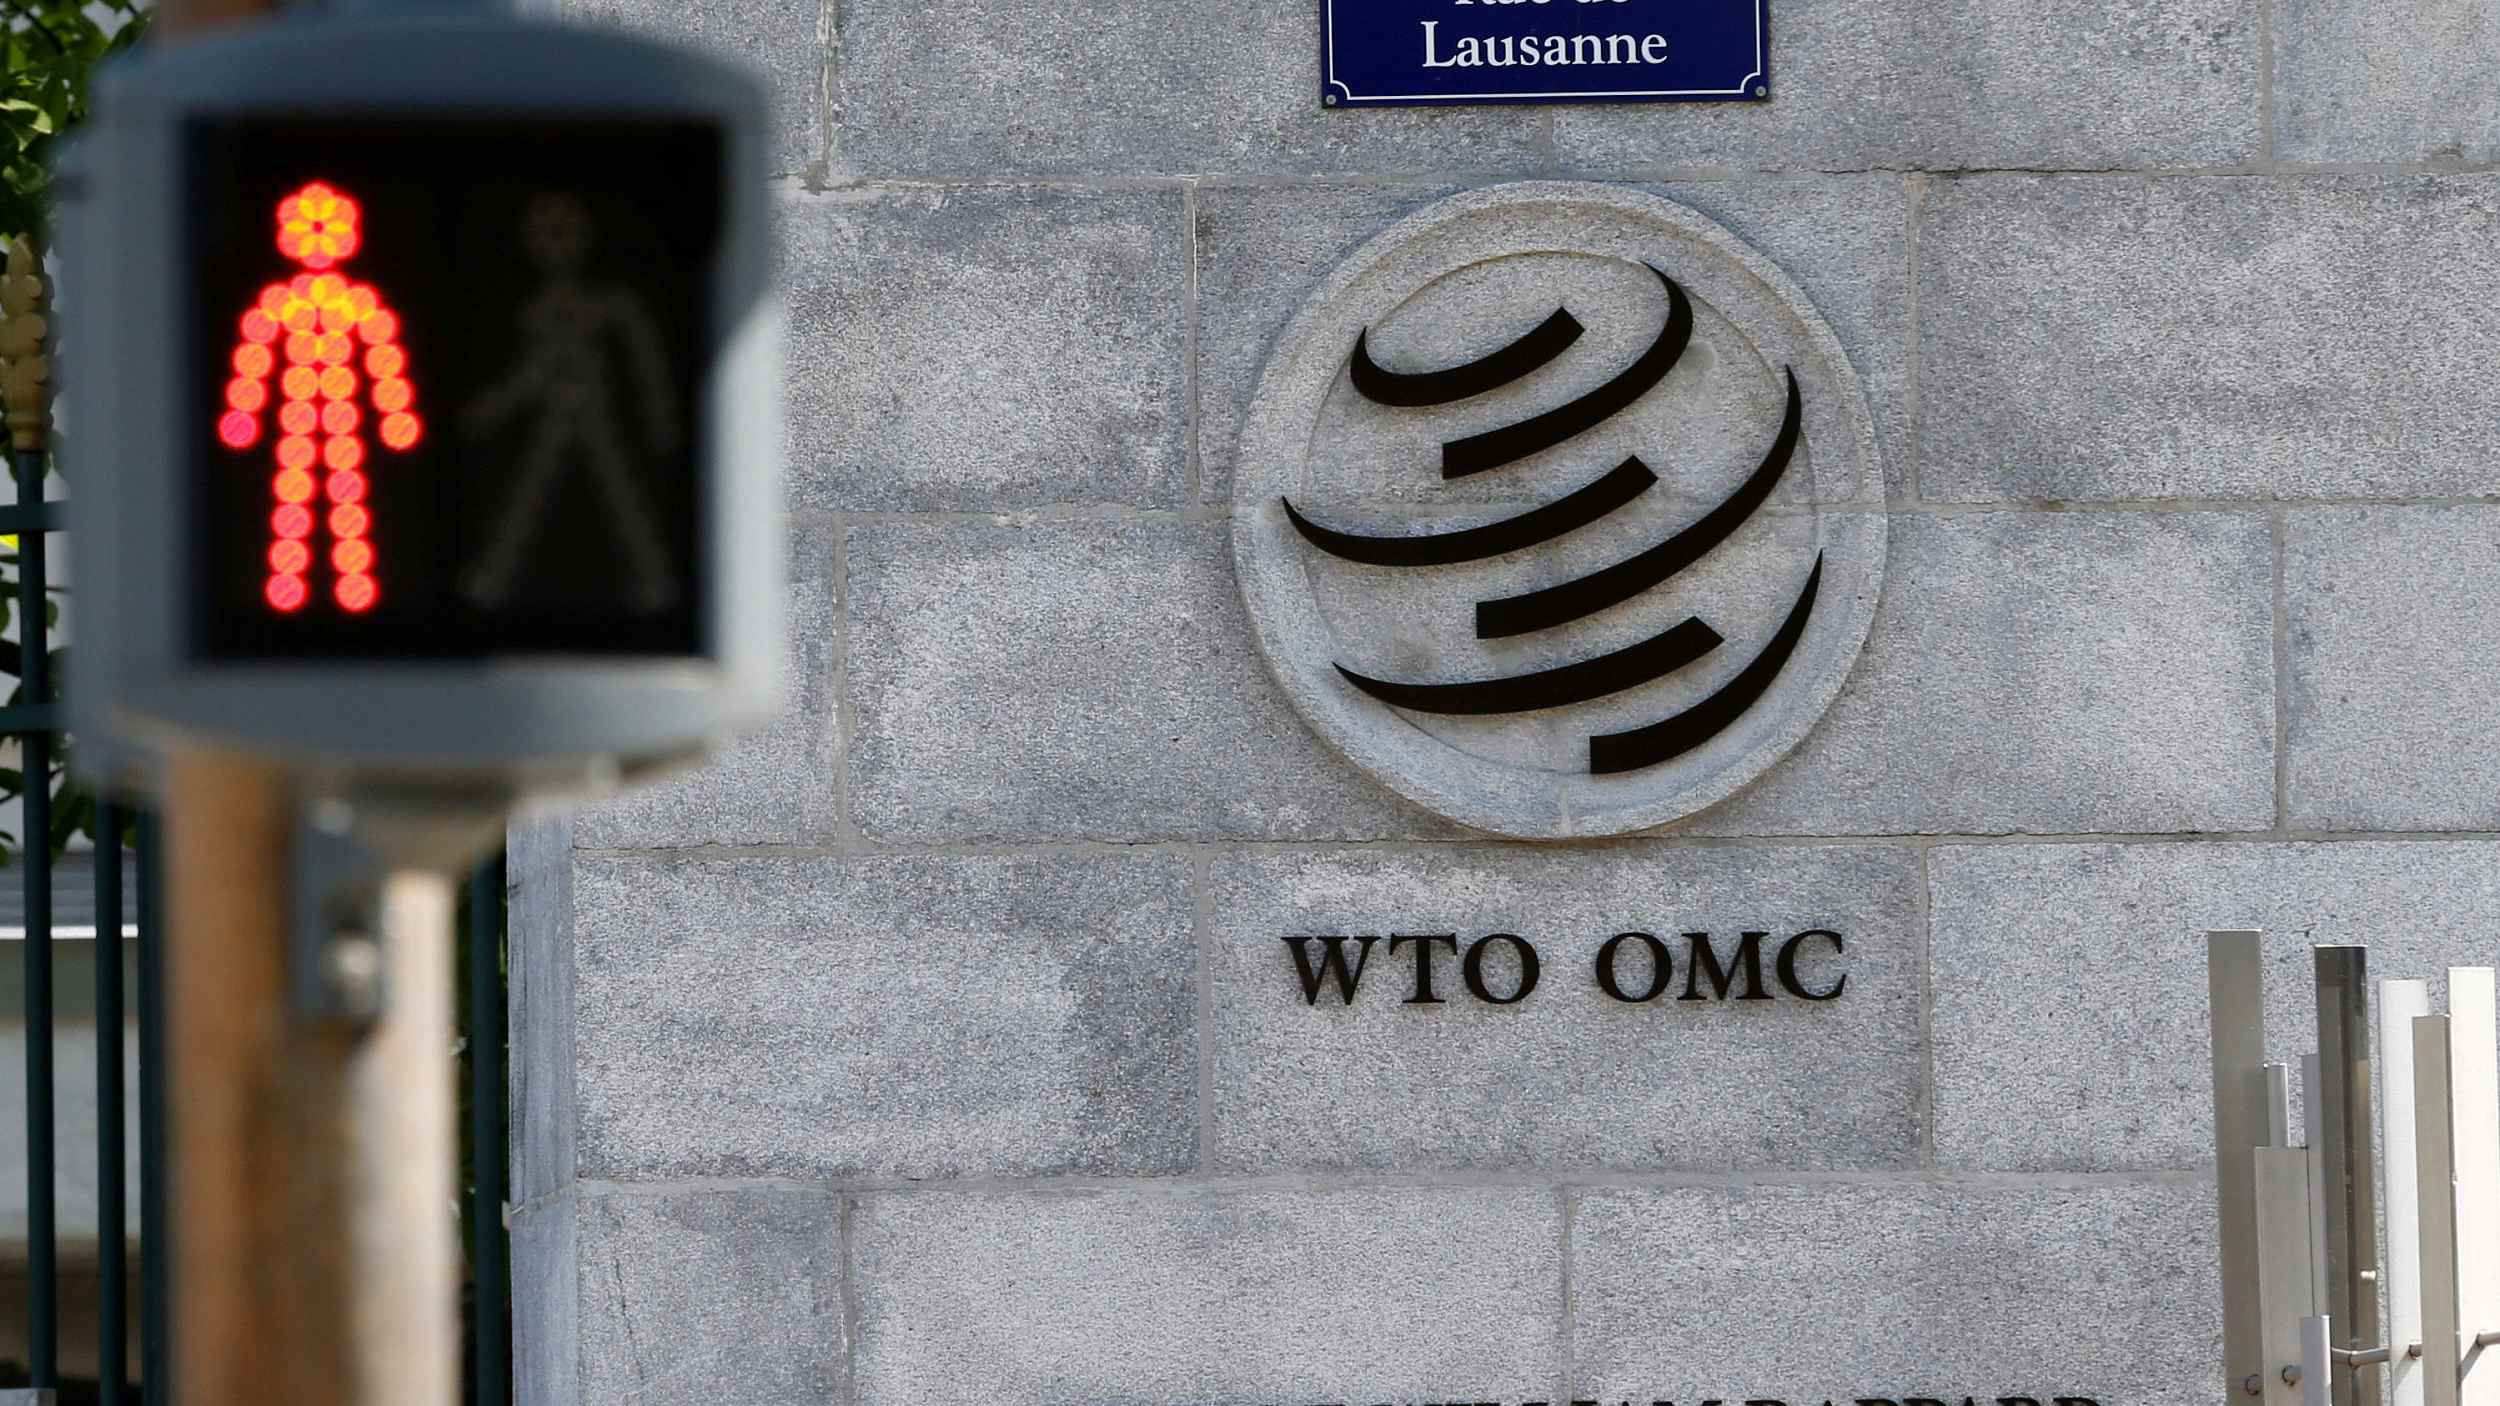 Over 40 countries and regions object to WTO over US car tariff plan